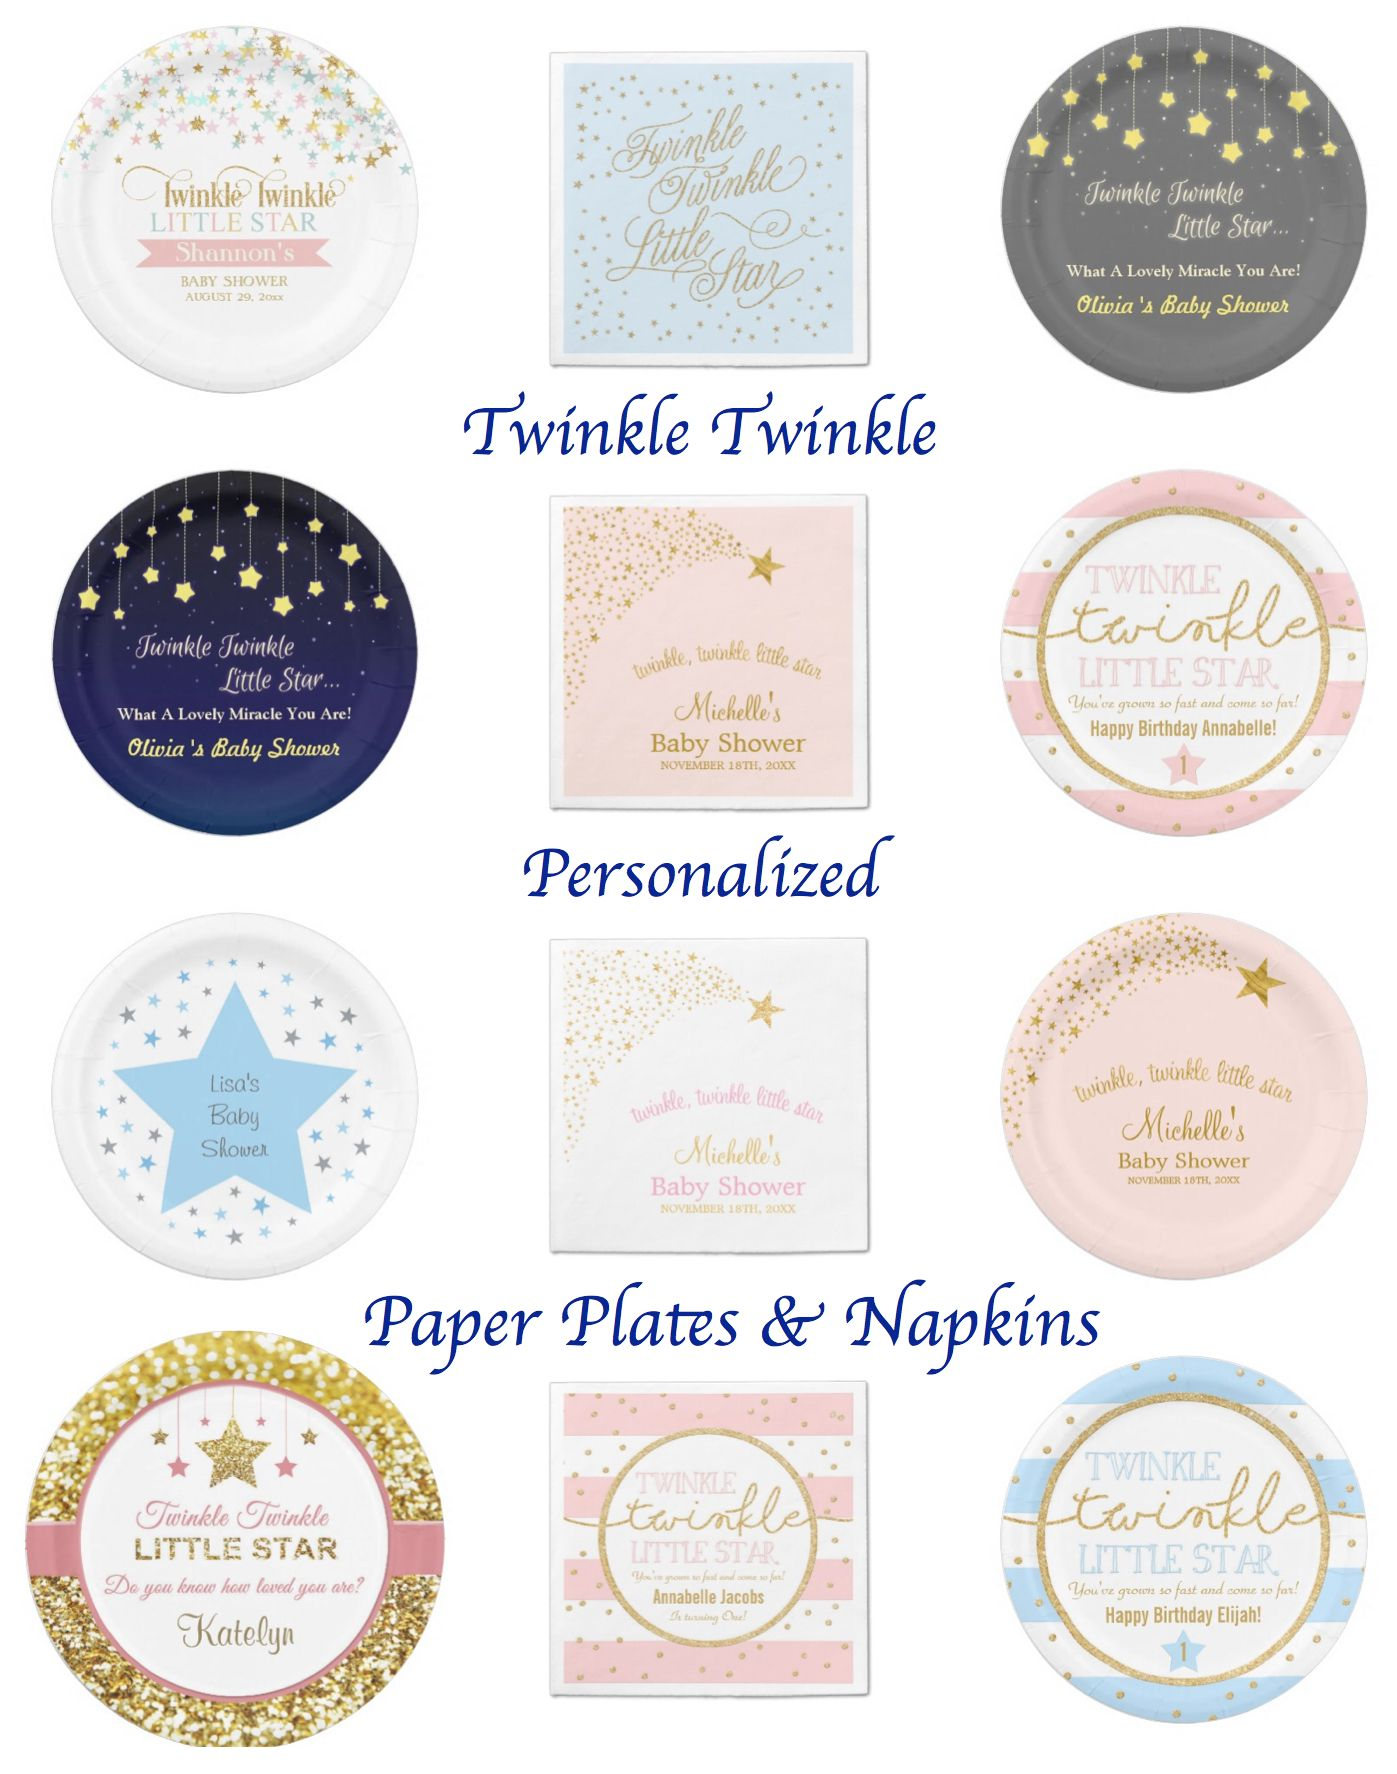 Birthdays · Twinkle Twinkle Personalized Paper Plates and Napkins  sc 1 st  Pinterest & Twinkle Twinkle Little Star Party Theme Planning Ideas \u0026 Supplies ...